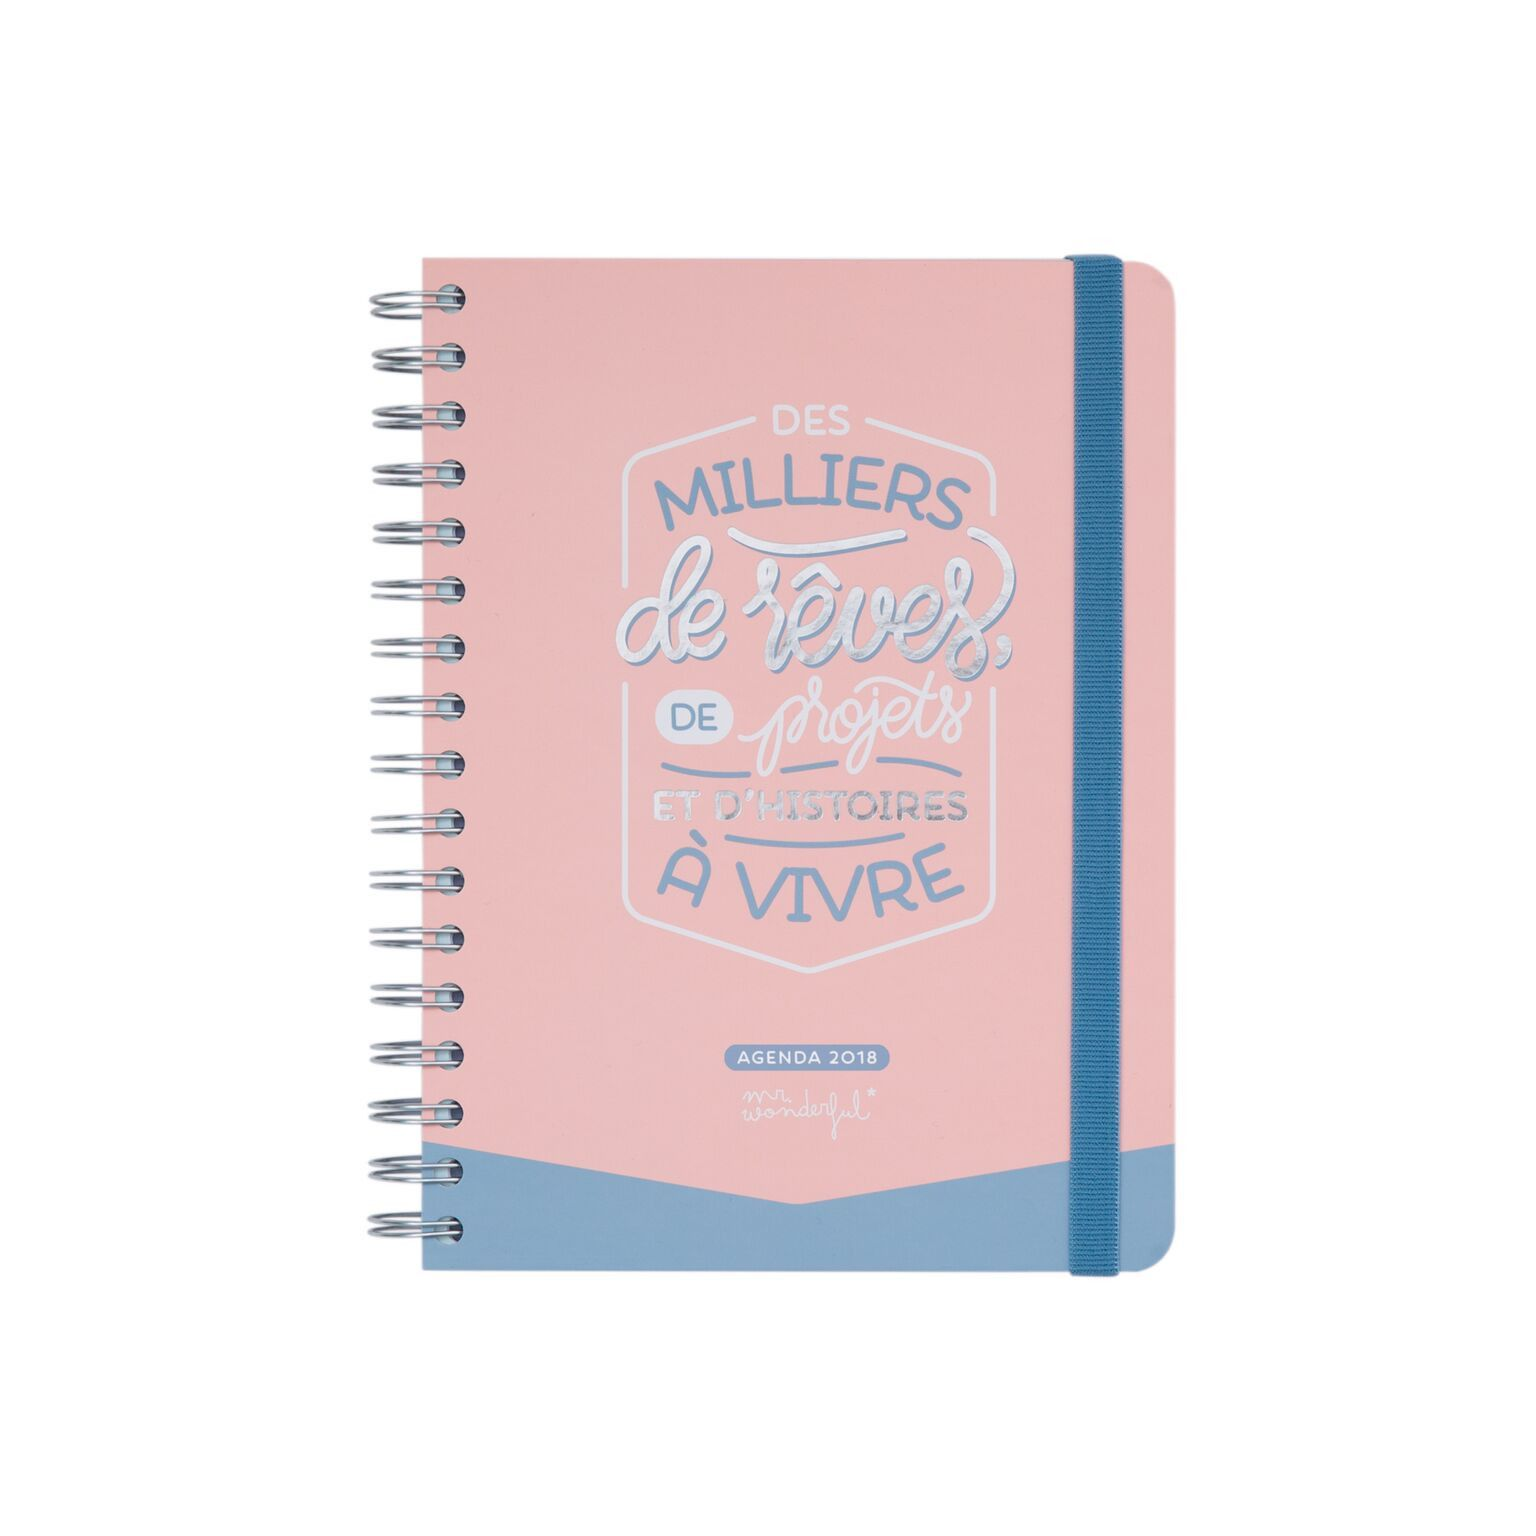 Agenda journalier mr wonderful 2017 2018 - Mr wonderful agenda 2017 ...